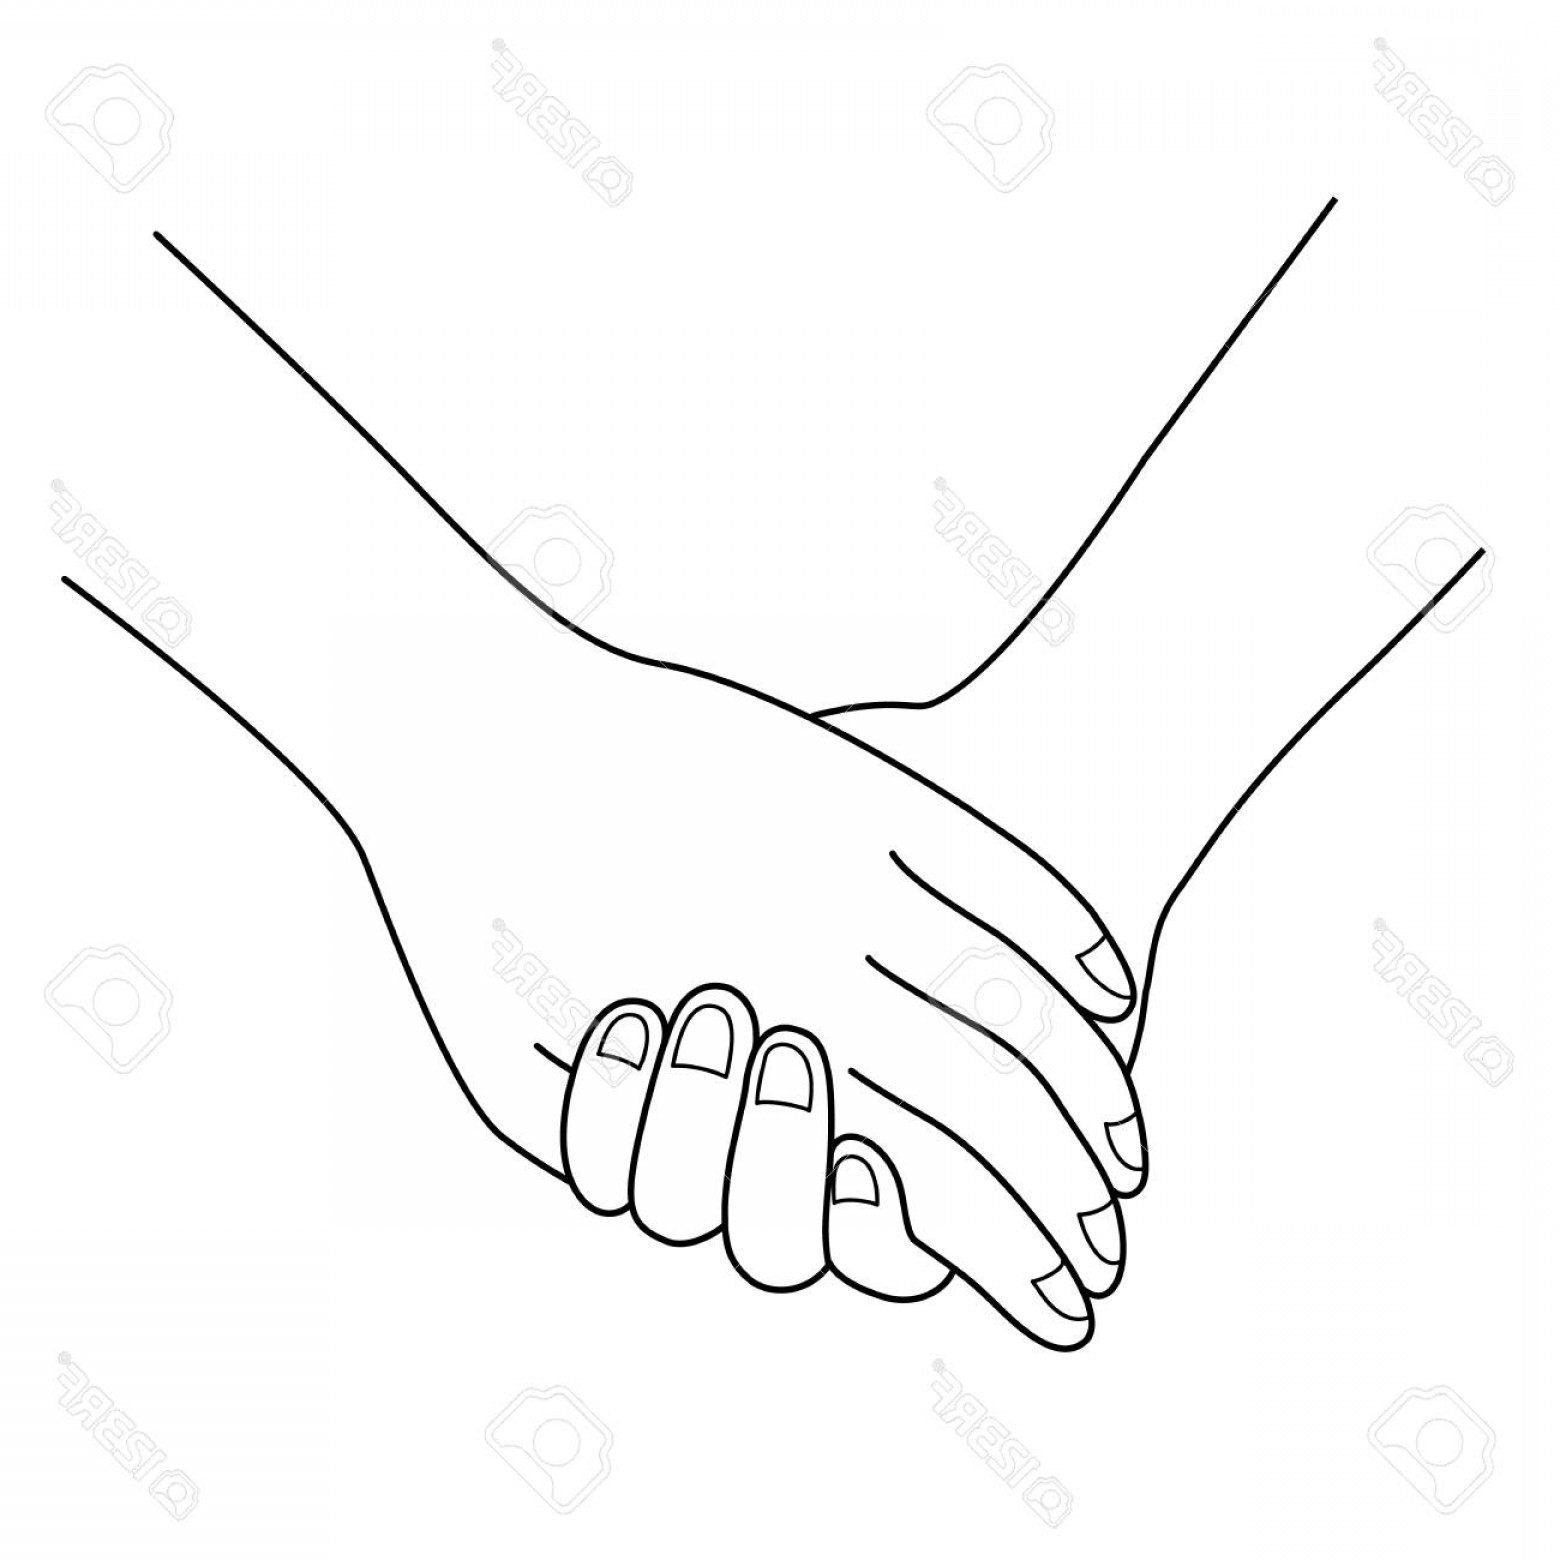 1560x1560 Photostock Vector Couple Holding Hands Outline Hand Drawn Style